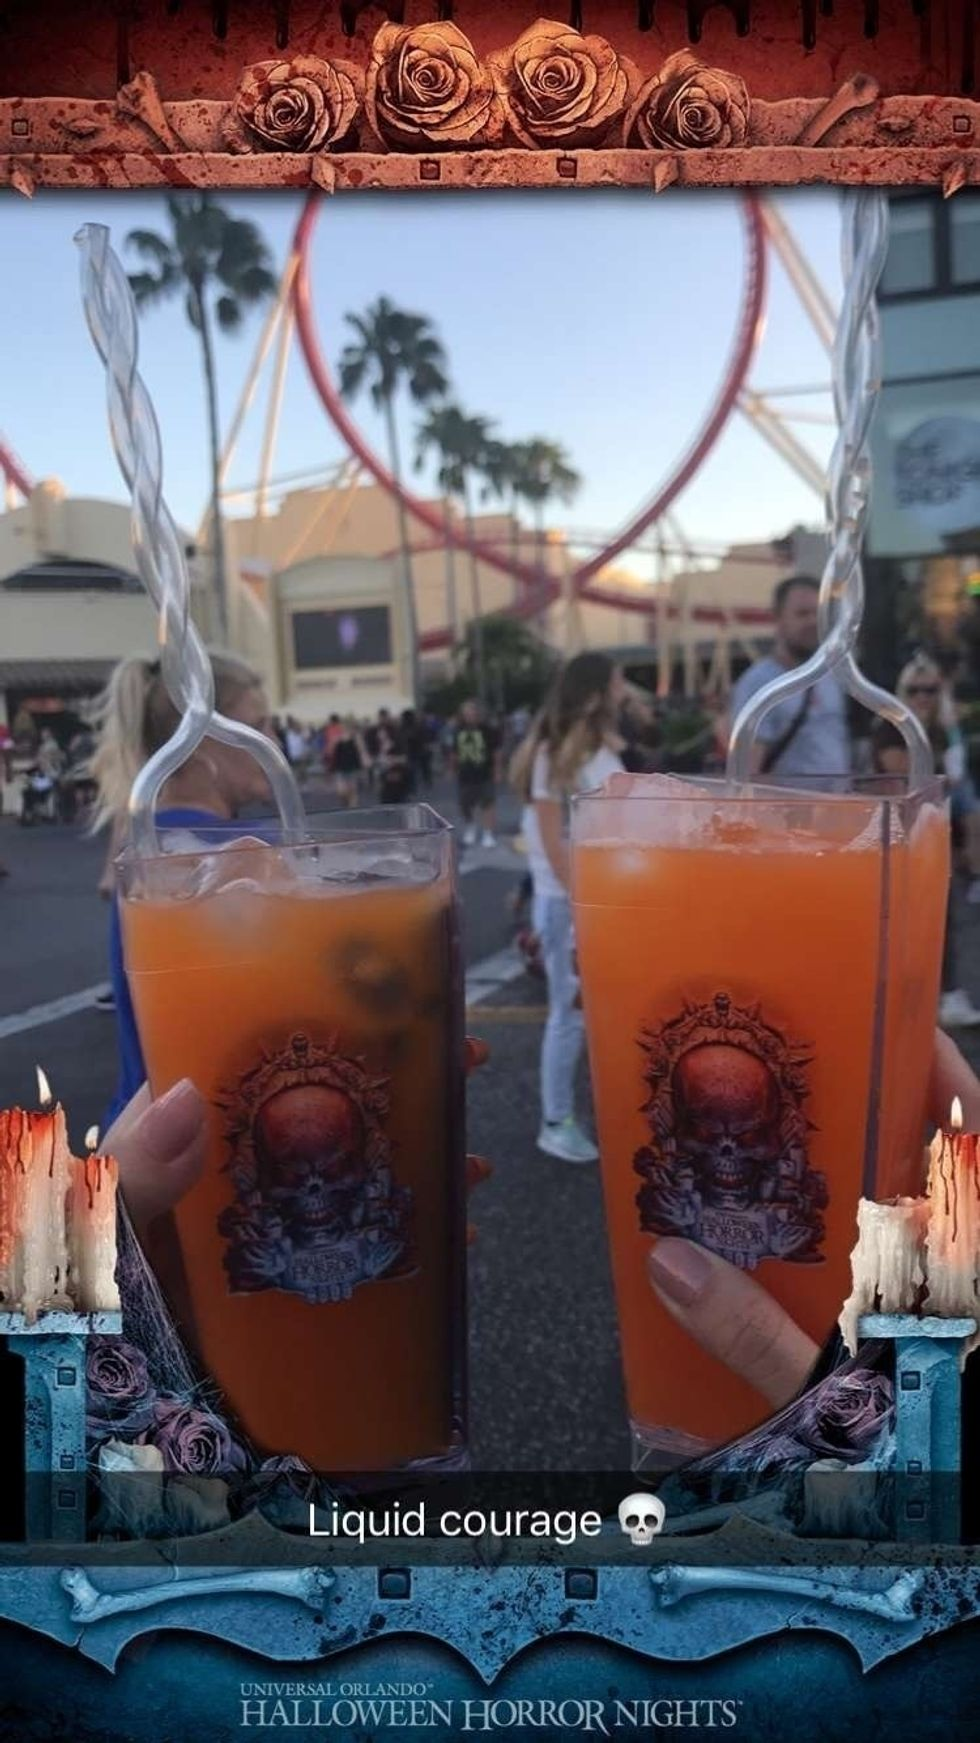 5 Things You Should Know Before Going To Halloween Horror Nights For The First Time